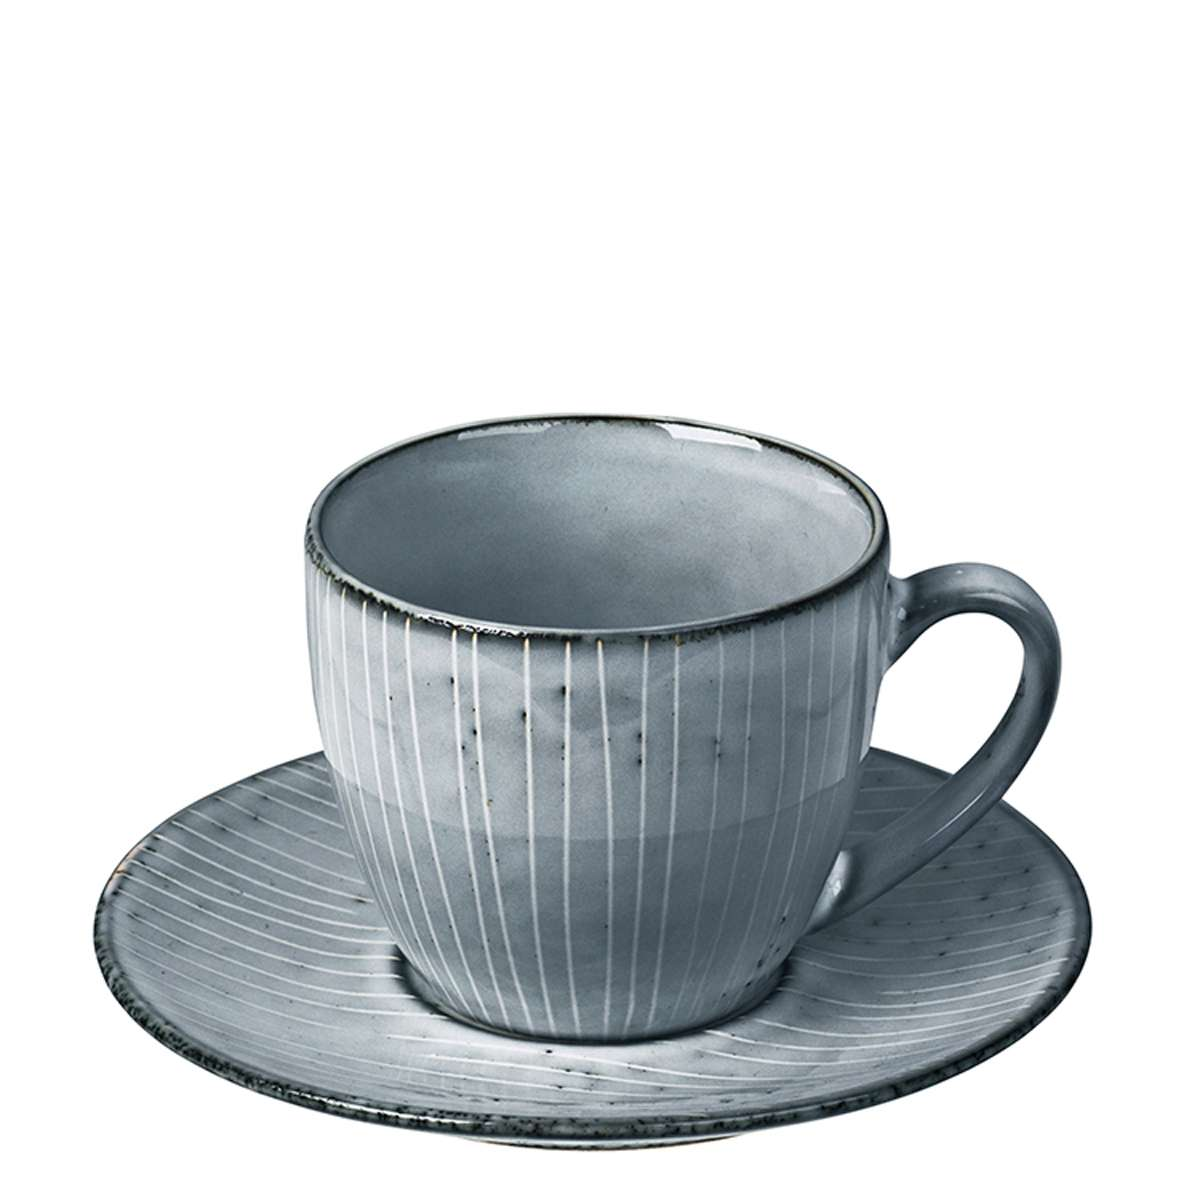 Broste Copenhagen Cup and Saucer in Nordic Sea Blue